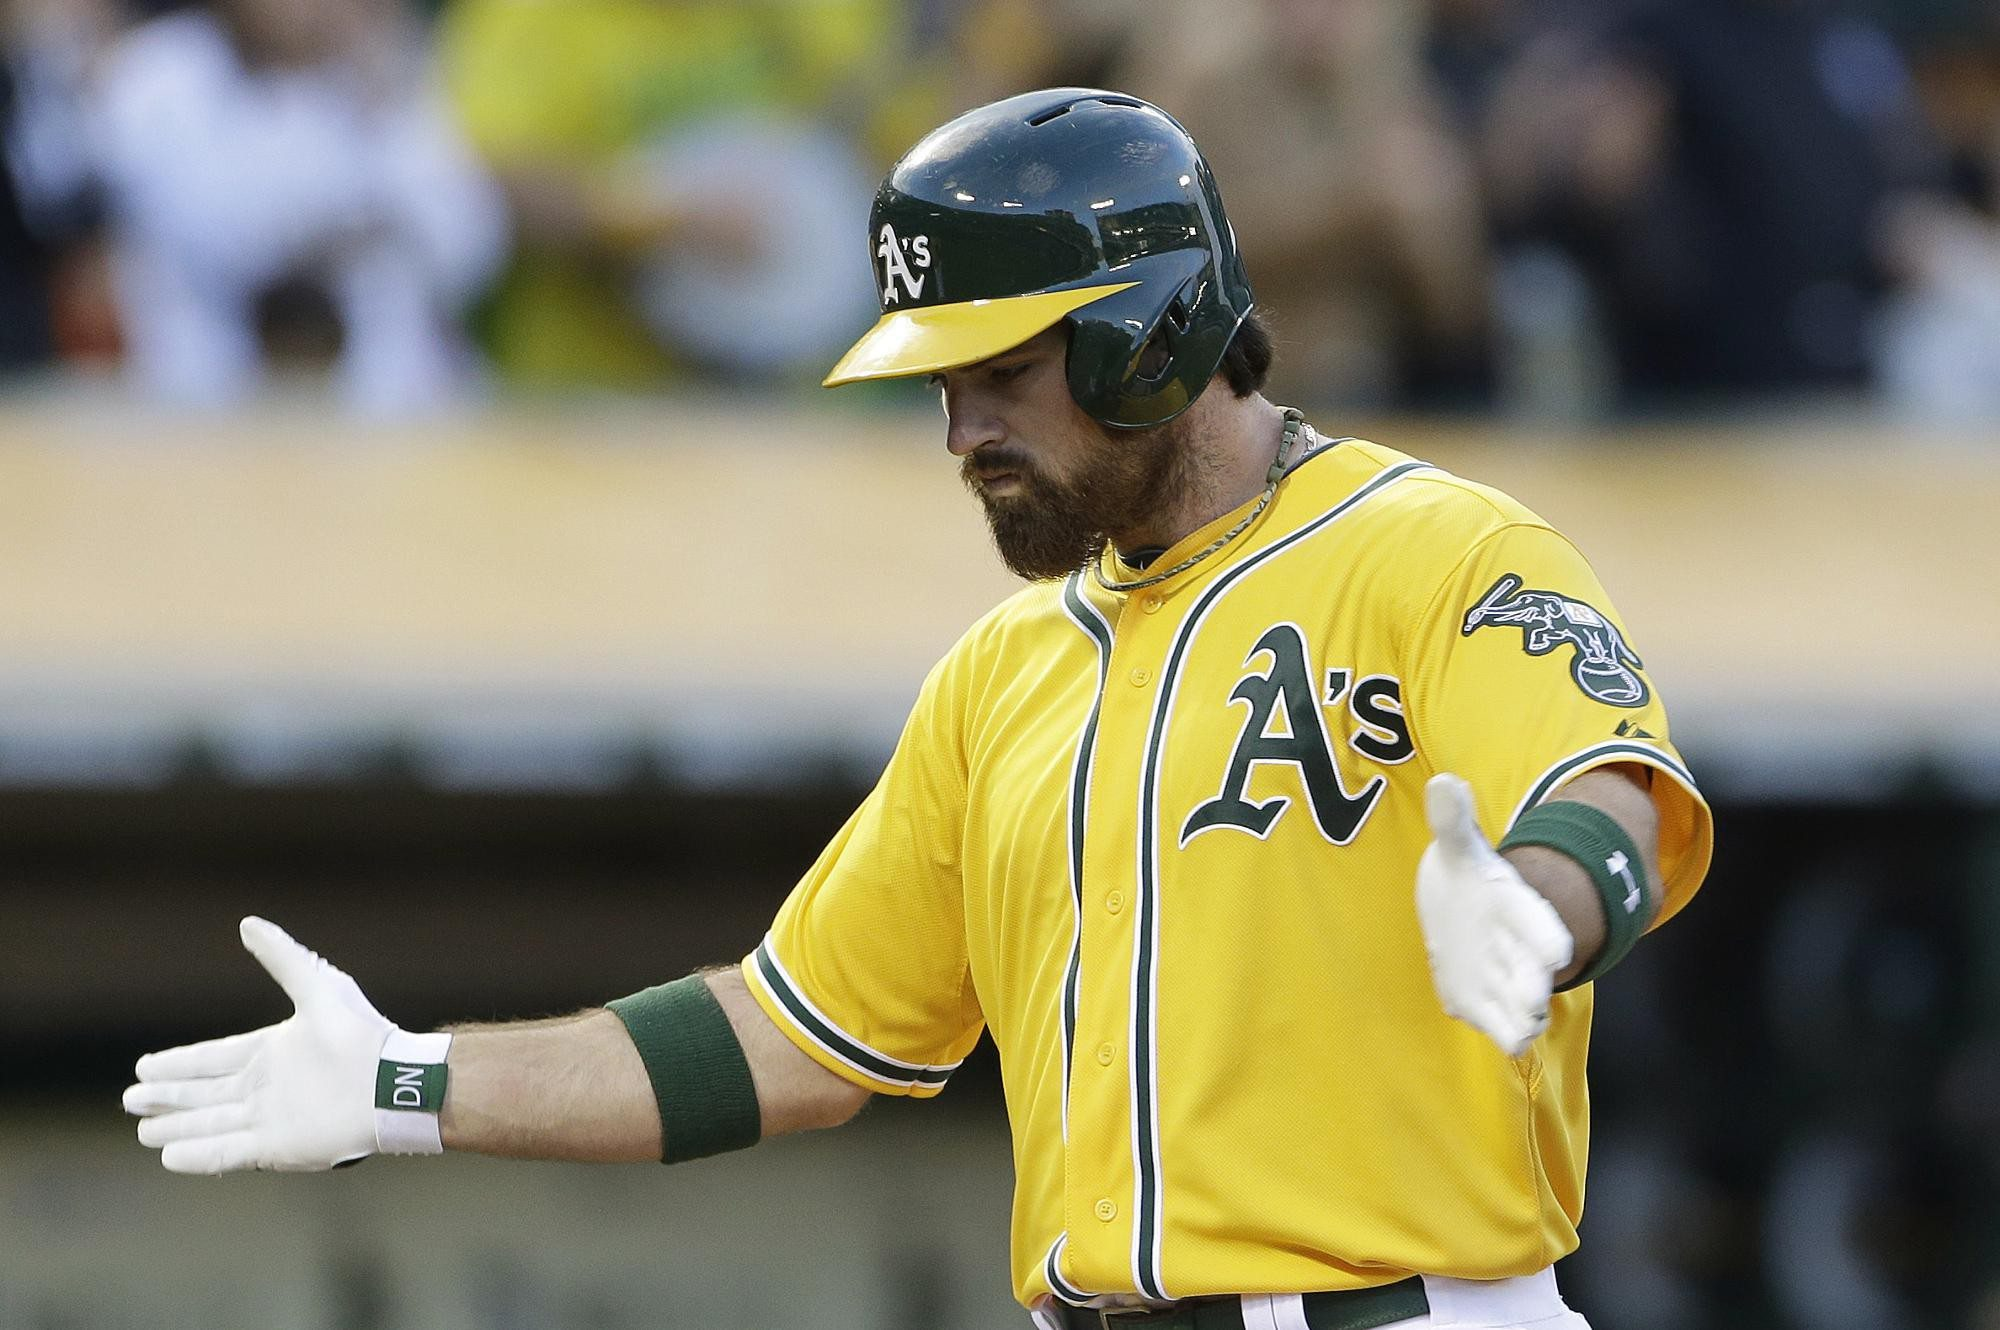 Associated PressOakland Athletics' Derek Norris reacts after hitting a two-run home run off San Francisco Giants starting pitcher Michael Kickham during the second inning of a baseball game Tuesday